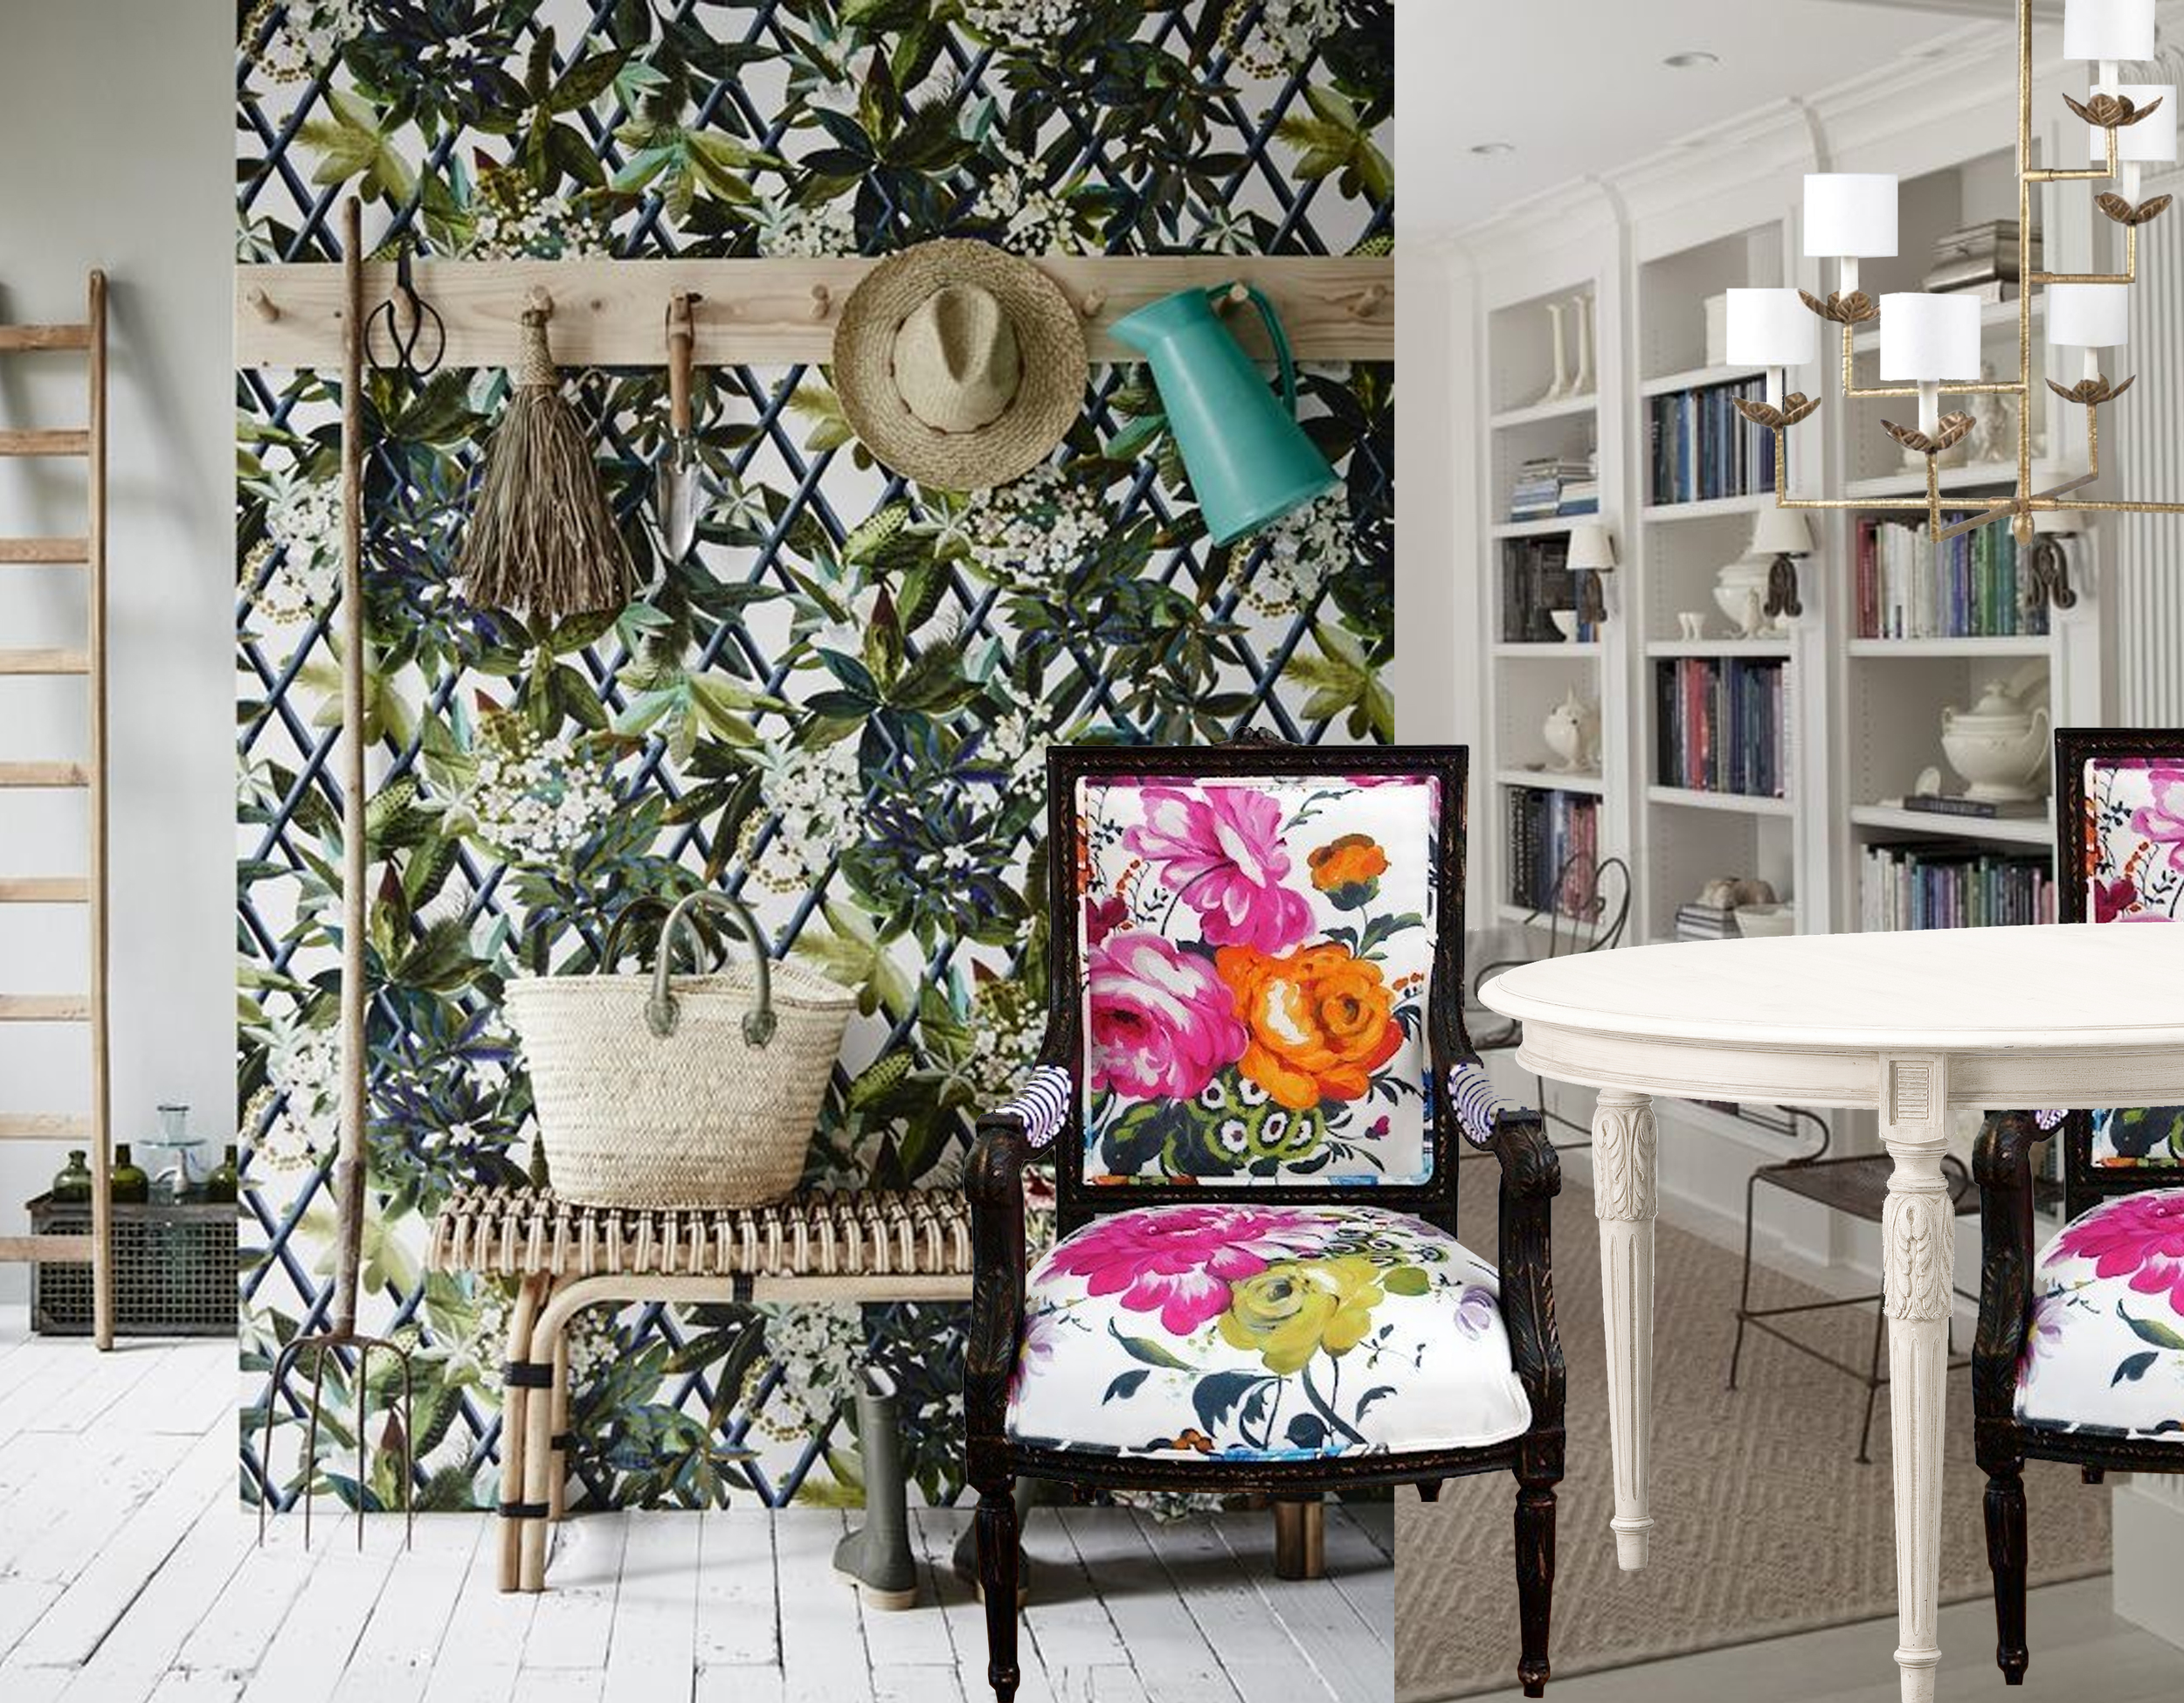 Canopy wallpaper  Christian Lacroix  - armchairs via  Apartment Therapy  - table Velleron  Mis en Demeure  - Colombier chandelier  Vaughan  - image library  Muse Architects